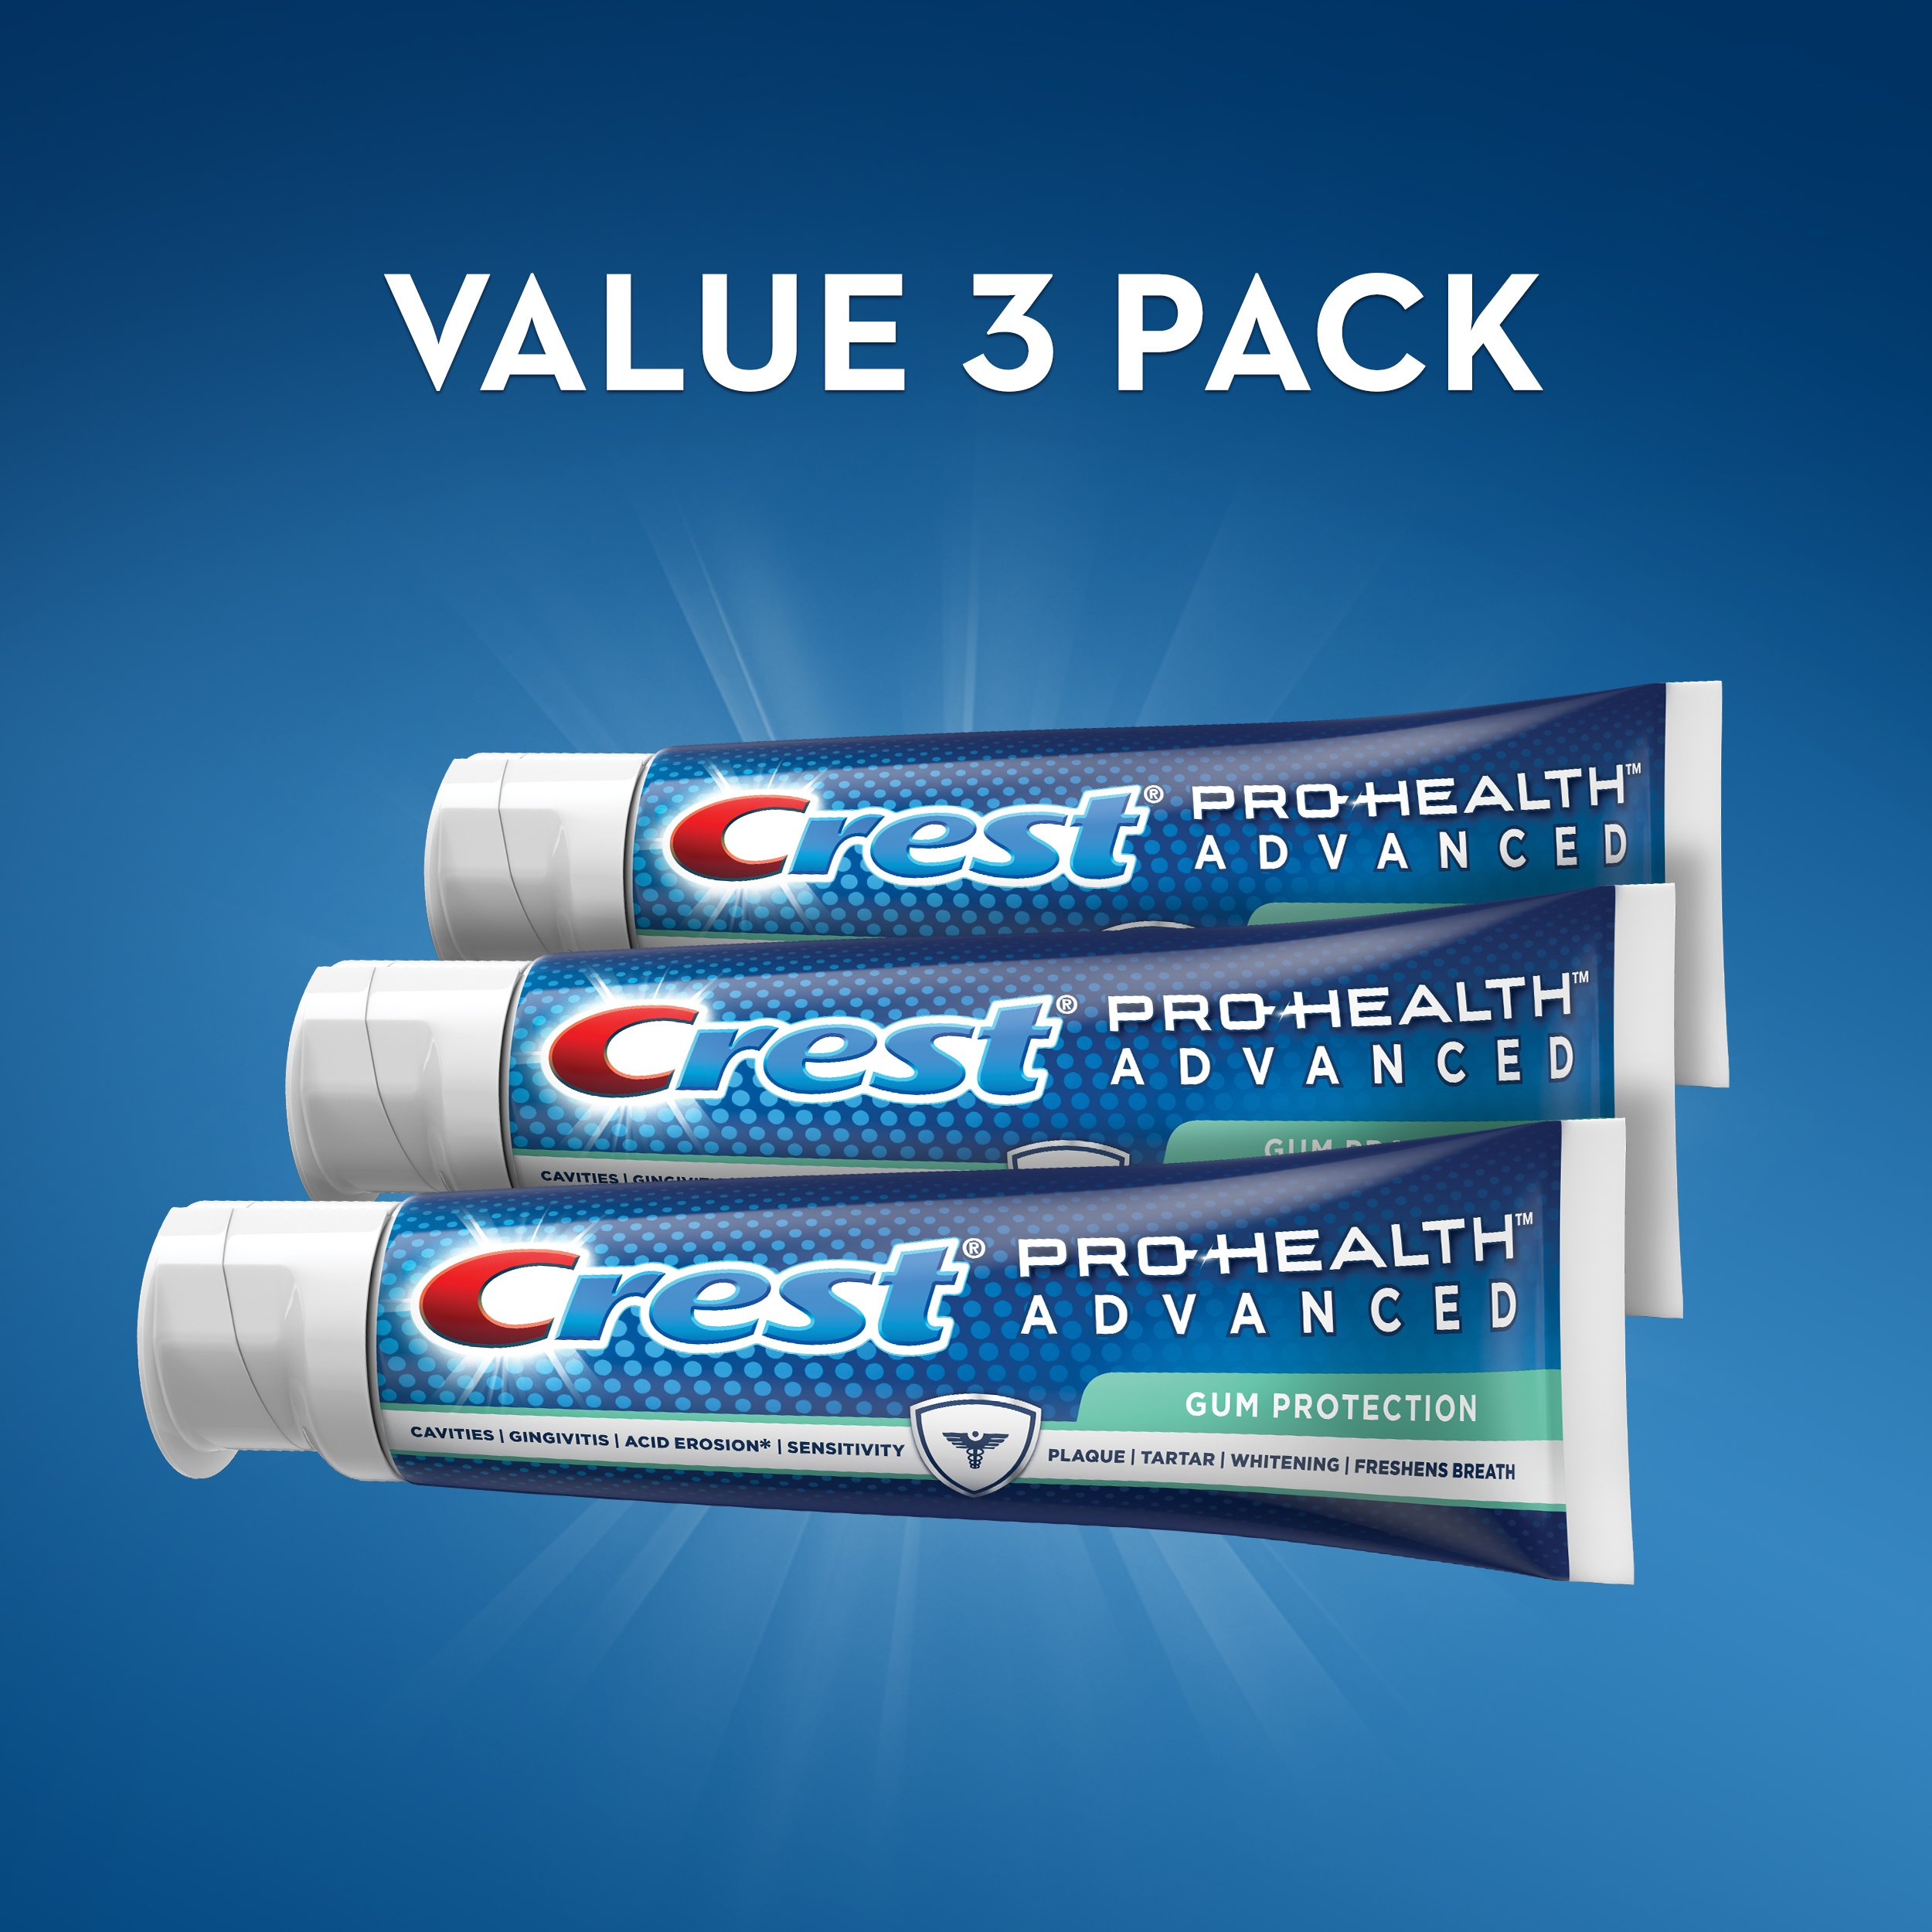 Crest Pro-Health Advanced Gum Protection Toothpaste, 5.1 oz, Triple pack by Crest (Image #5)